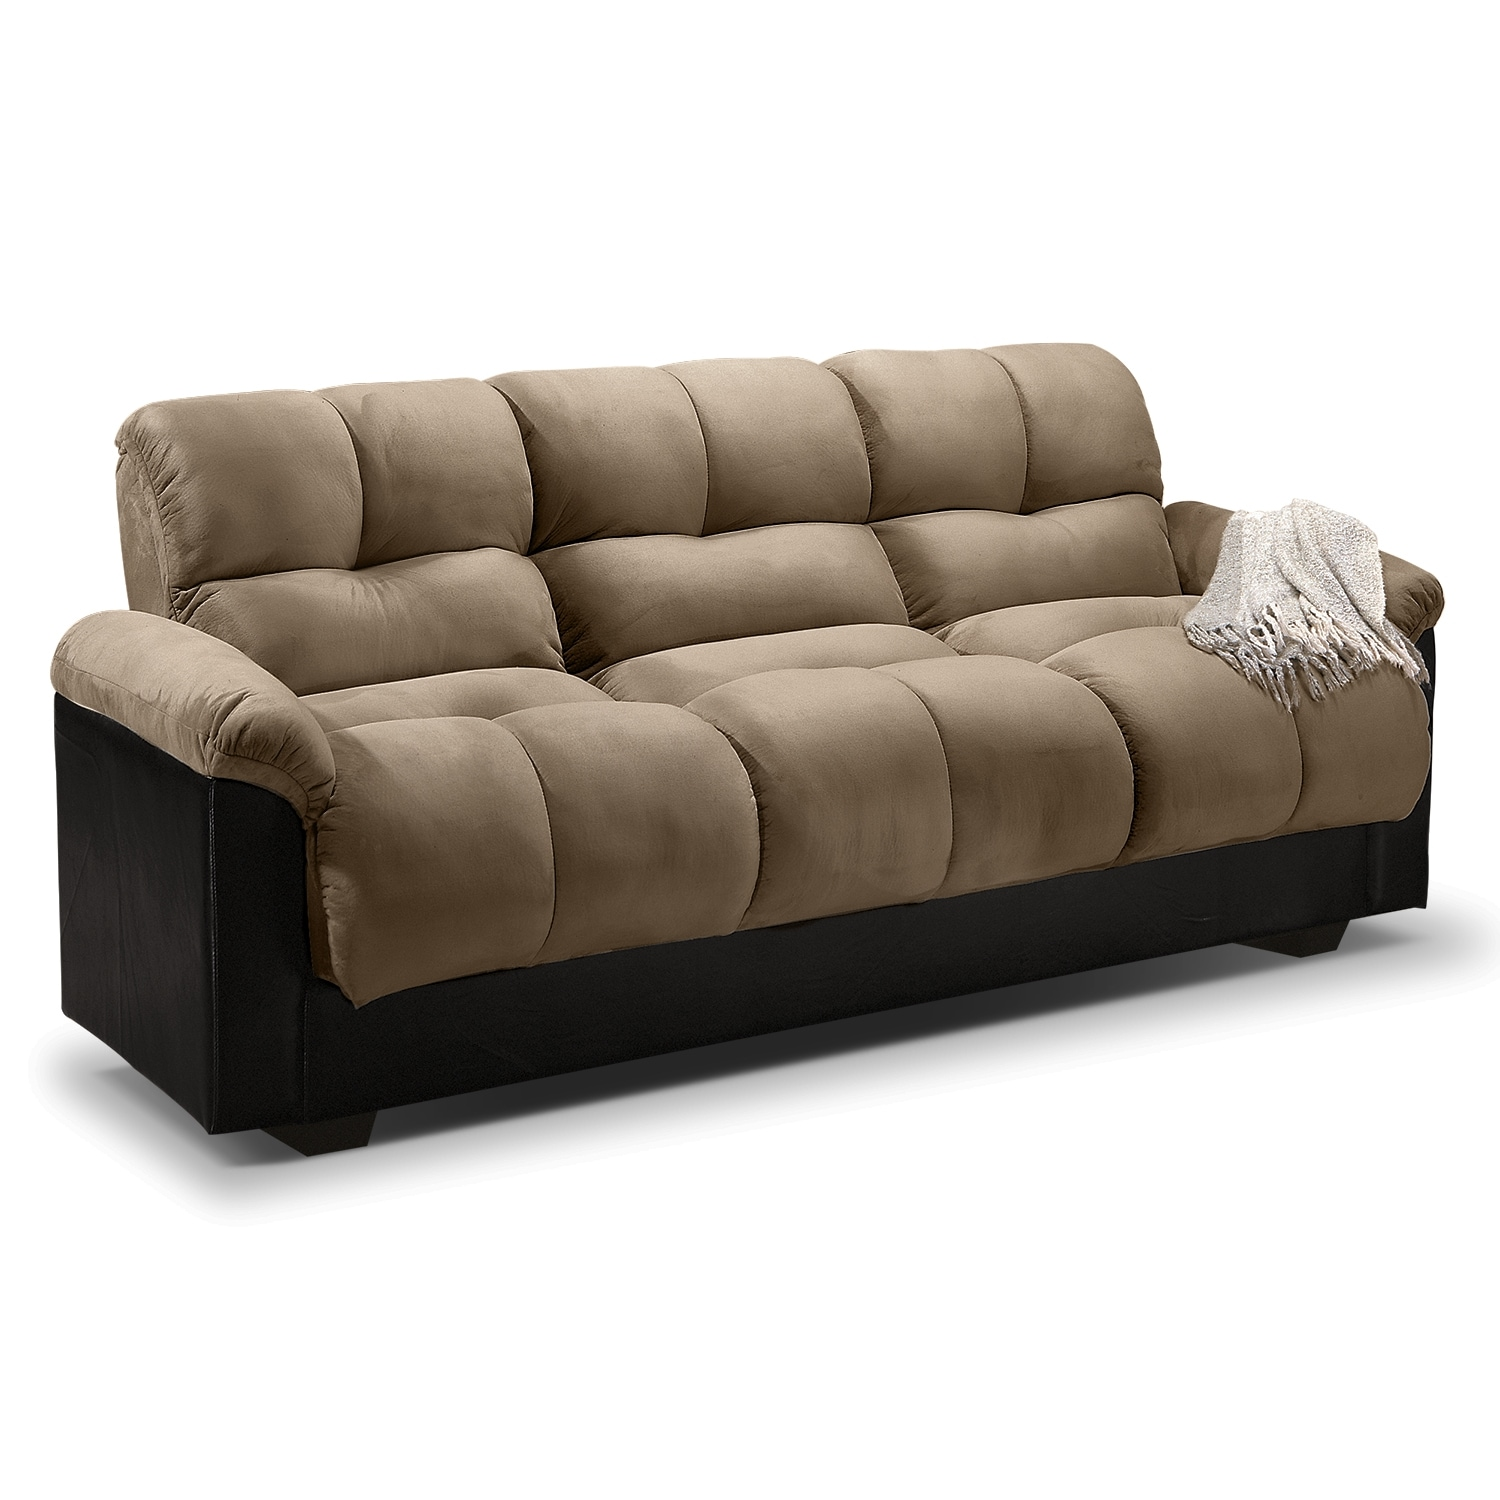 Crawford futon sofa bed with storage for Sofa bed futon